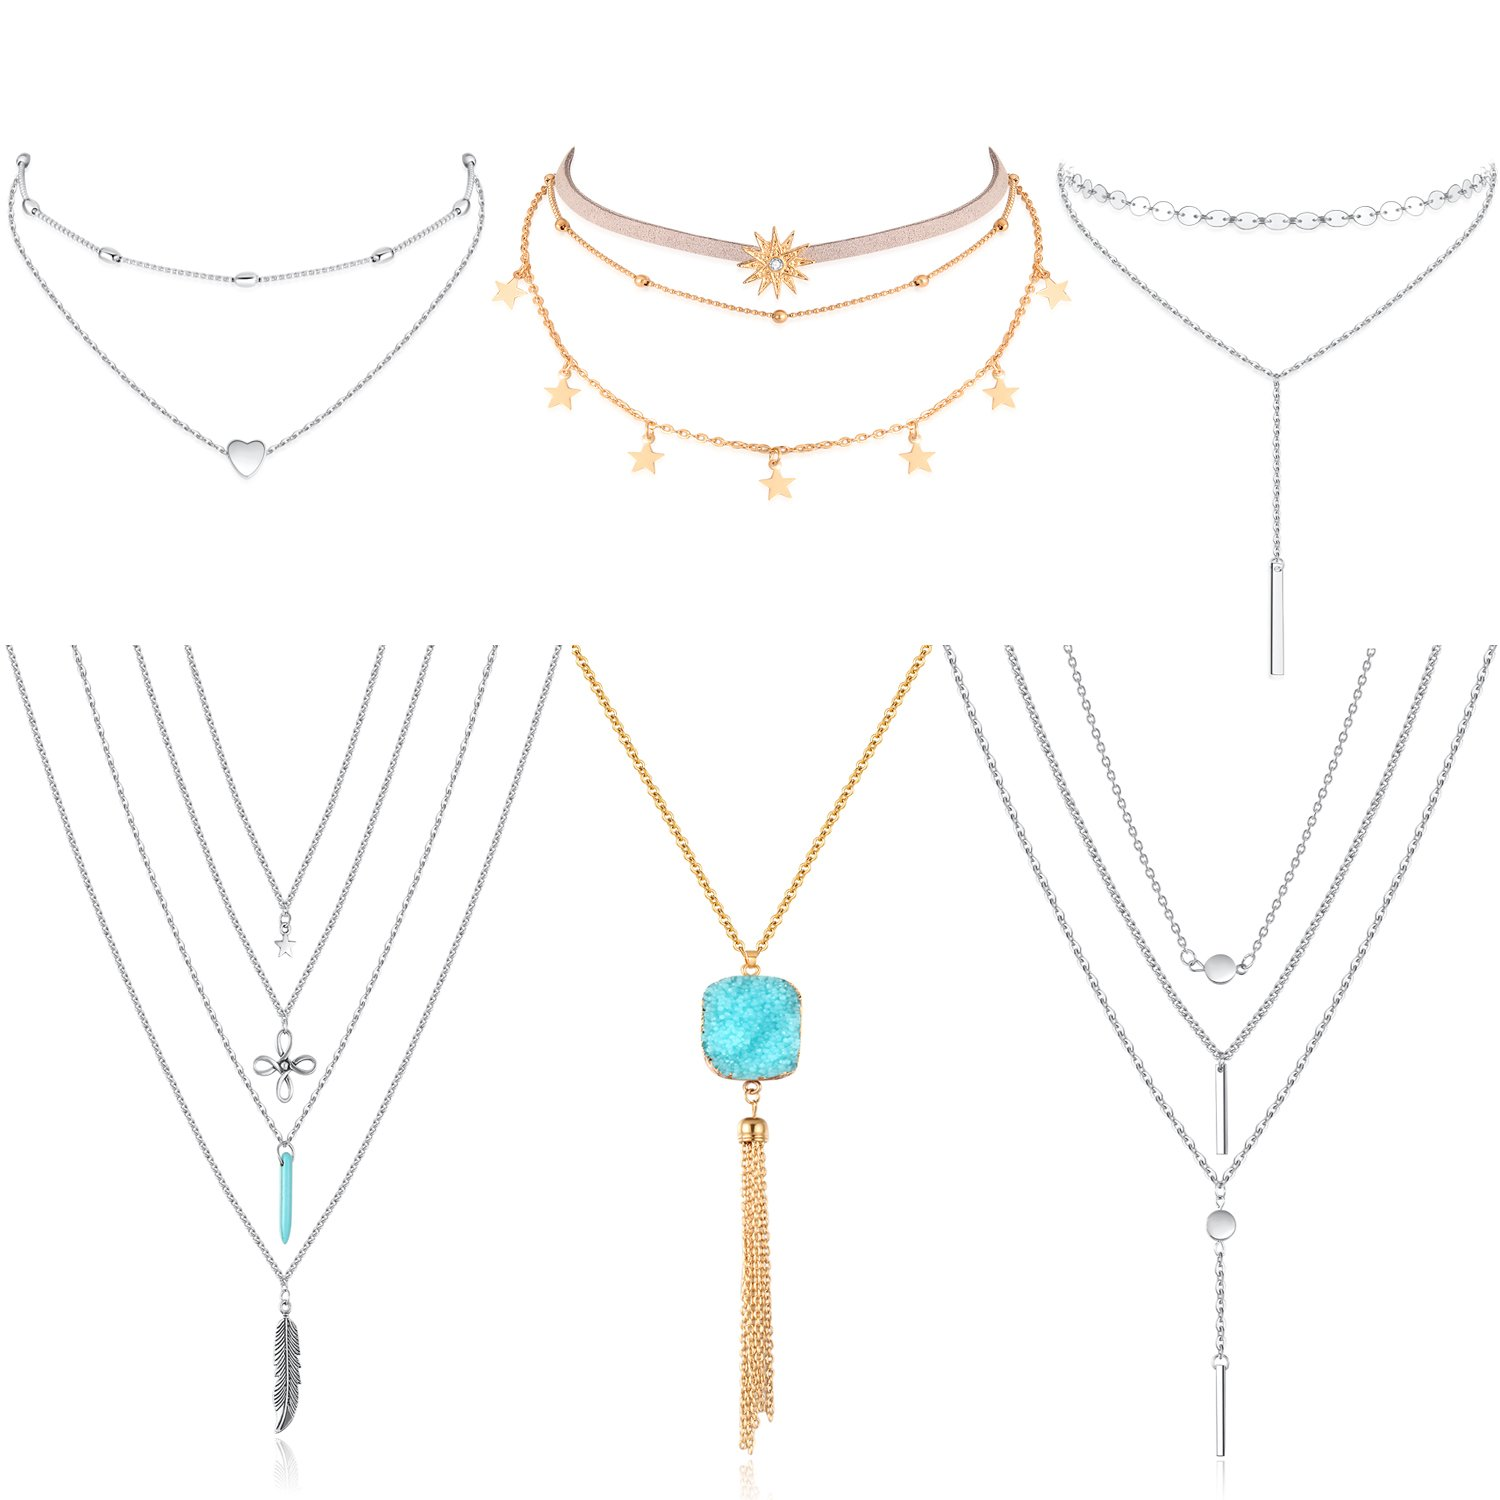 KissYan Boho Layared Necklace Choker Necklace Turquoise Feather Long Necklaces For Women Girls Pack of 6